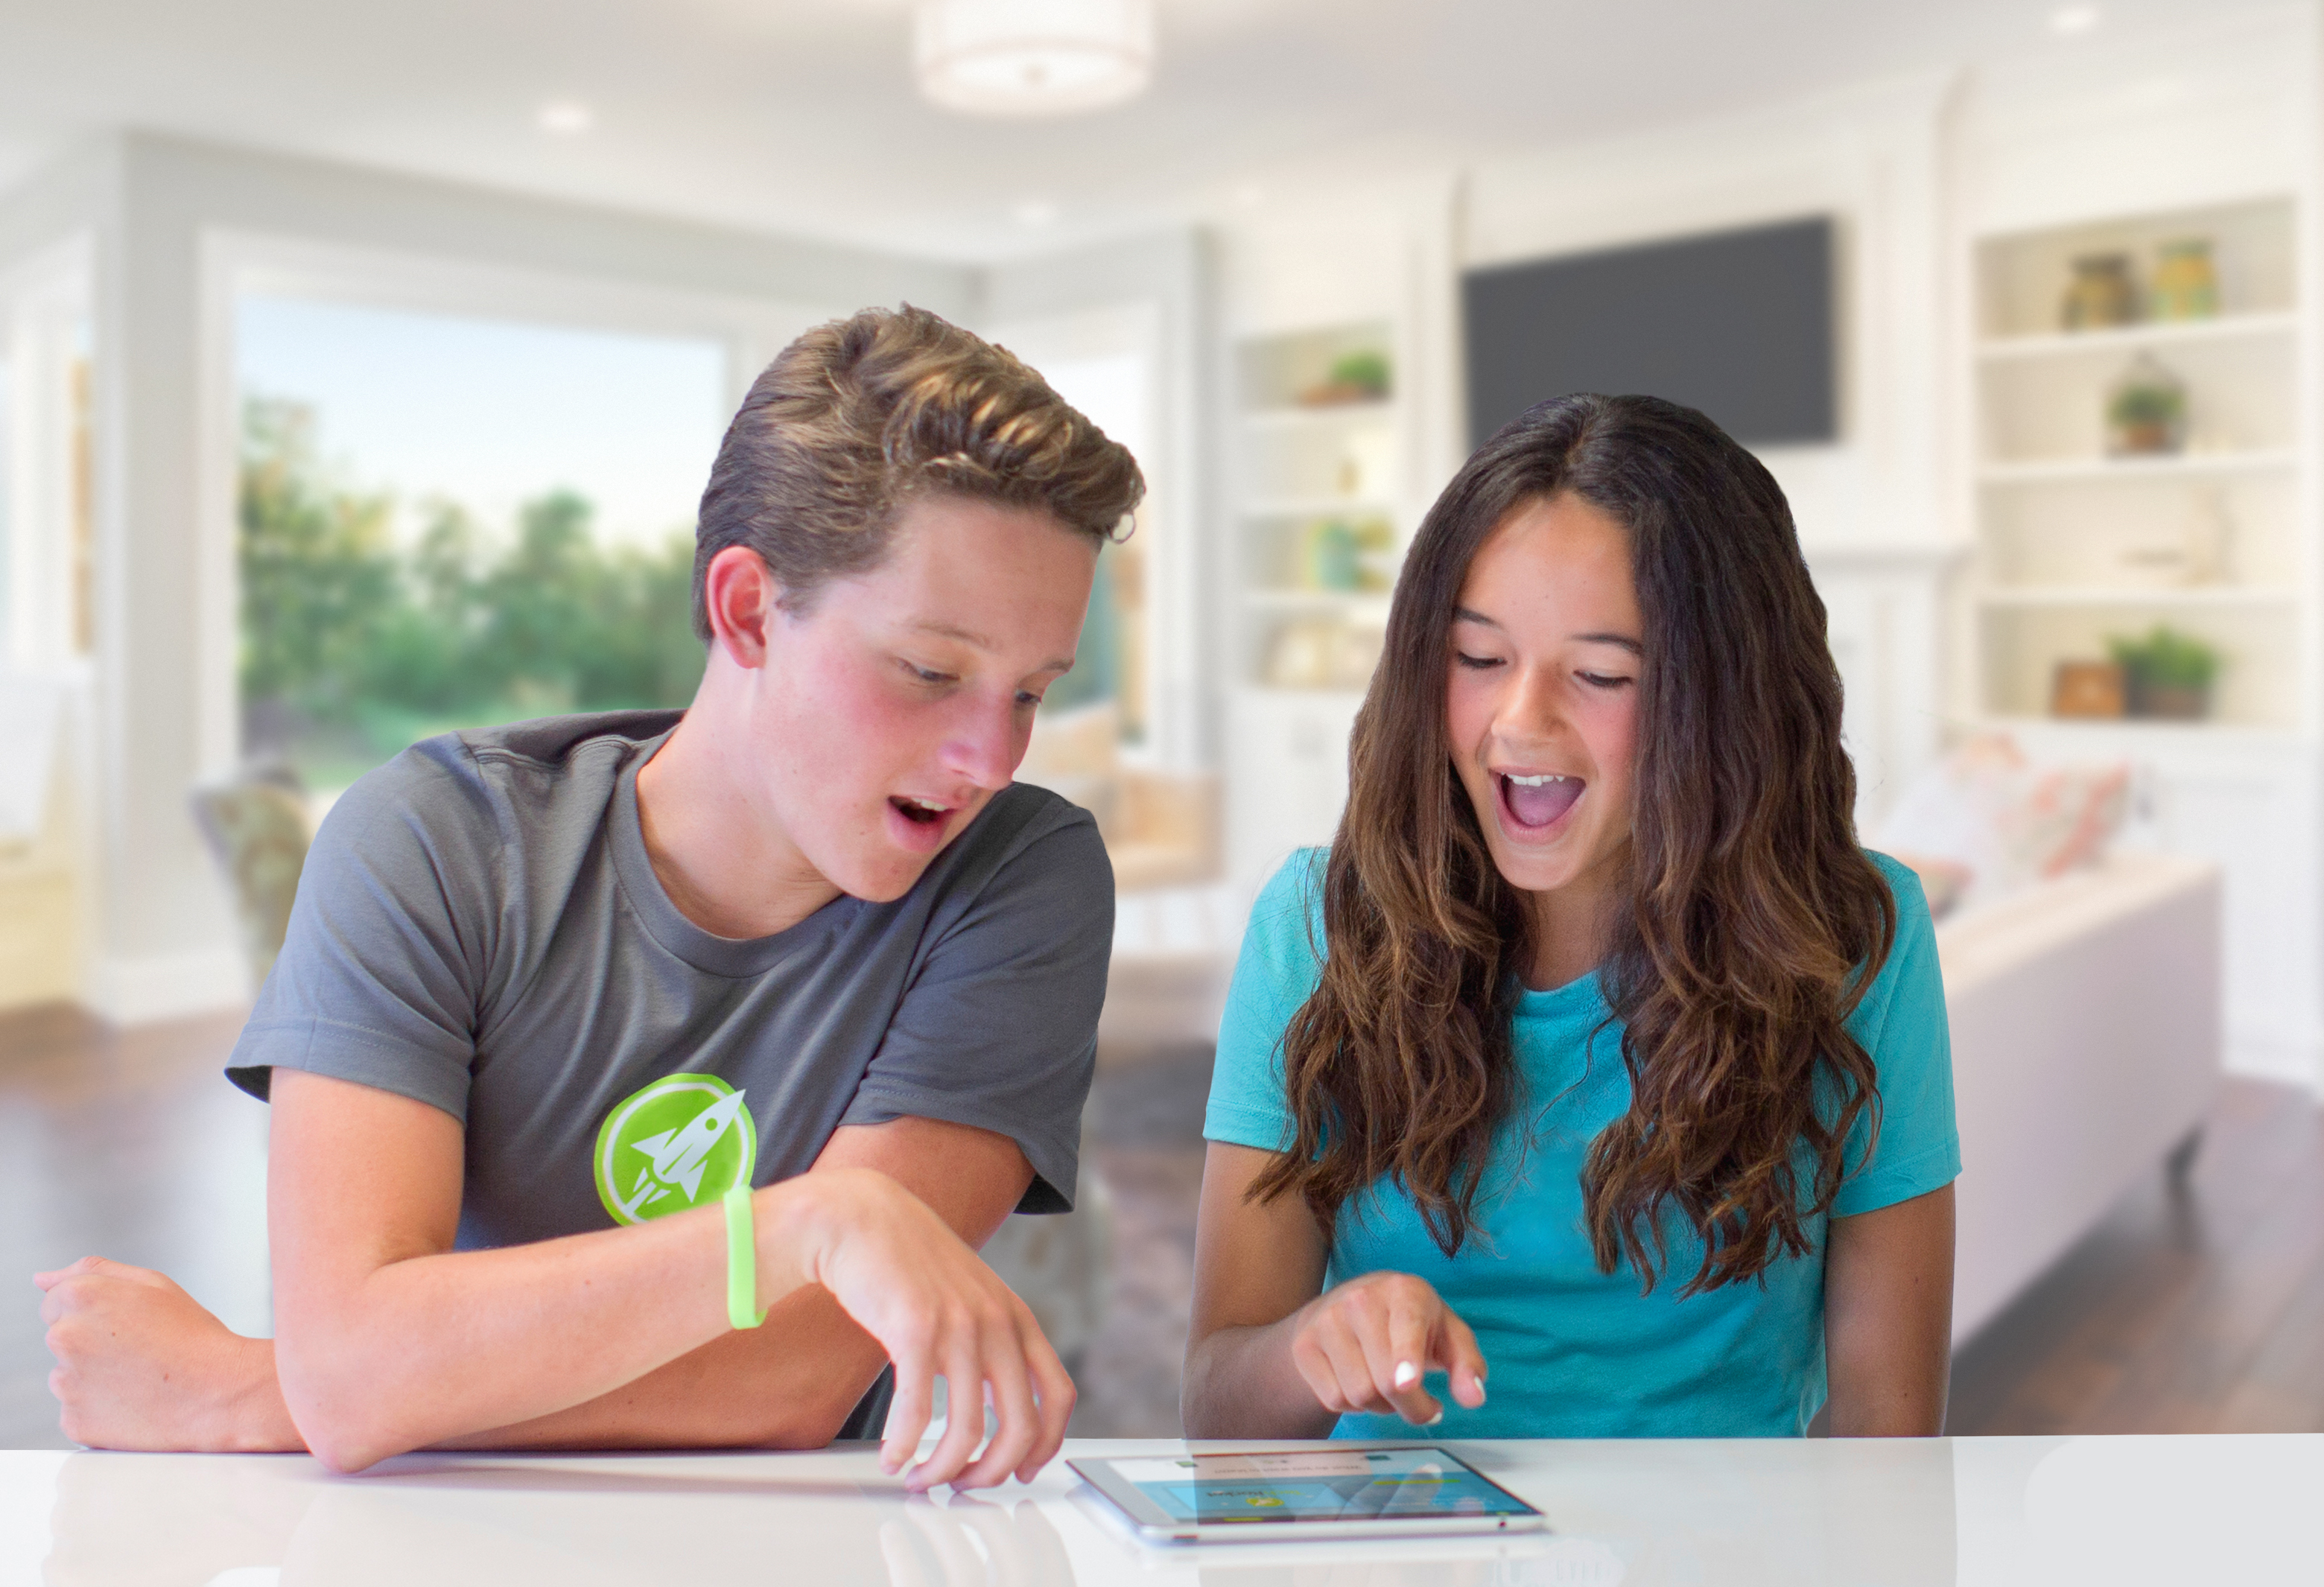 Summer Program - Video Gaming | iD Tech Camps | Held at Caltech